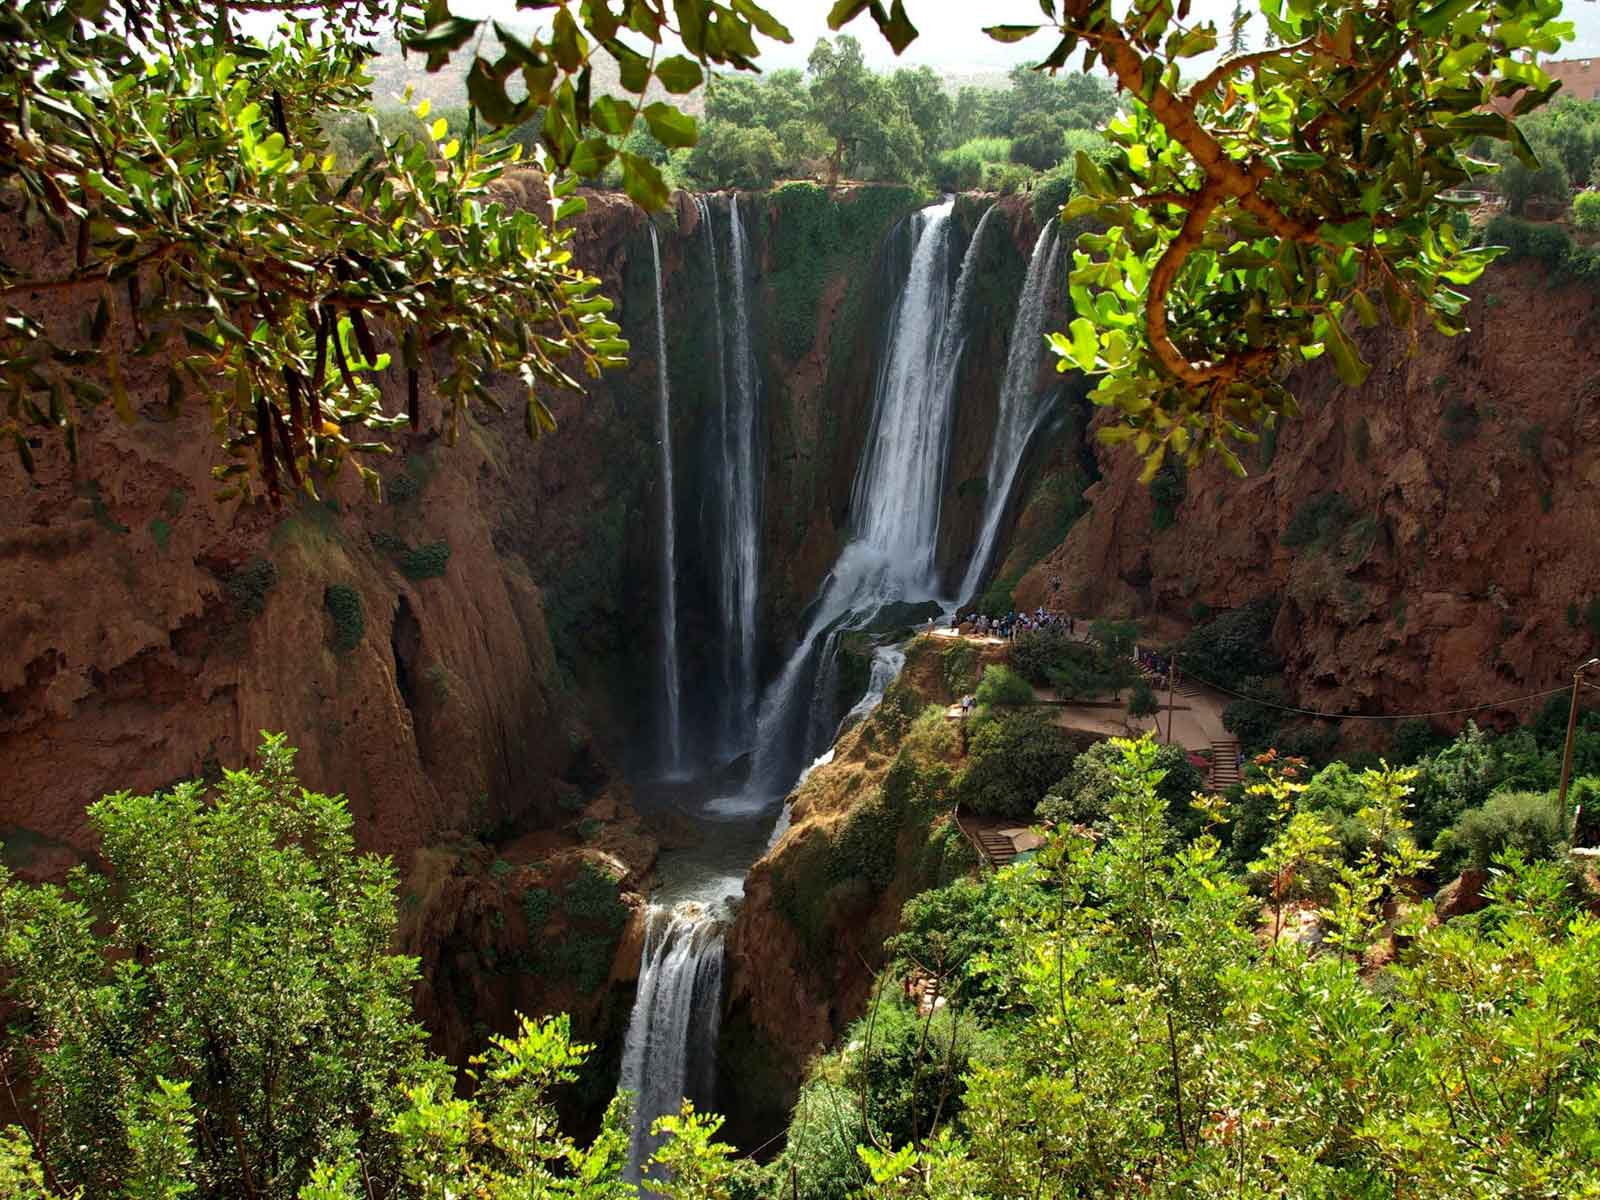 Morocco day trip excursion to Ouzoud waterfalls from Marrakech